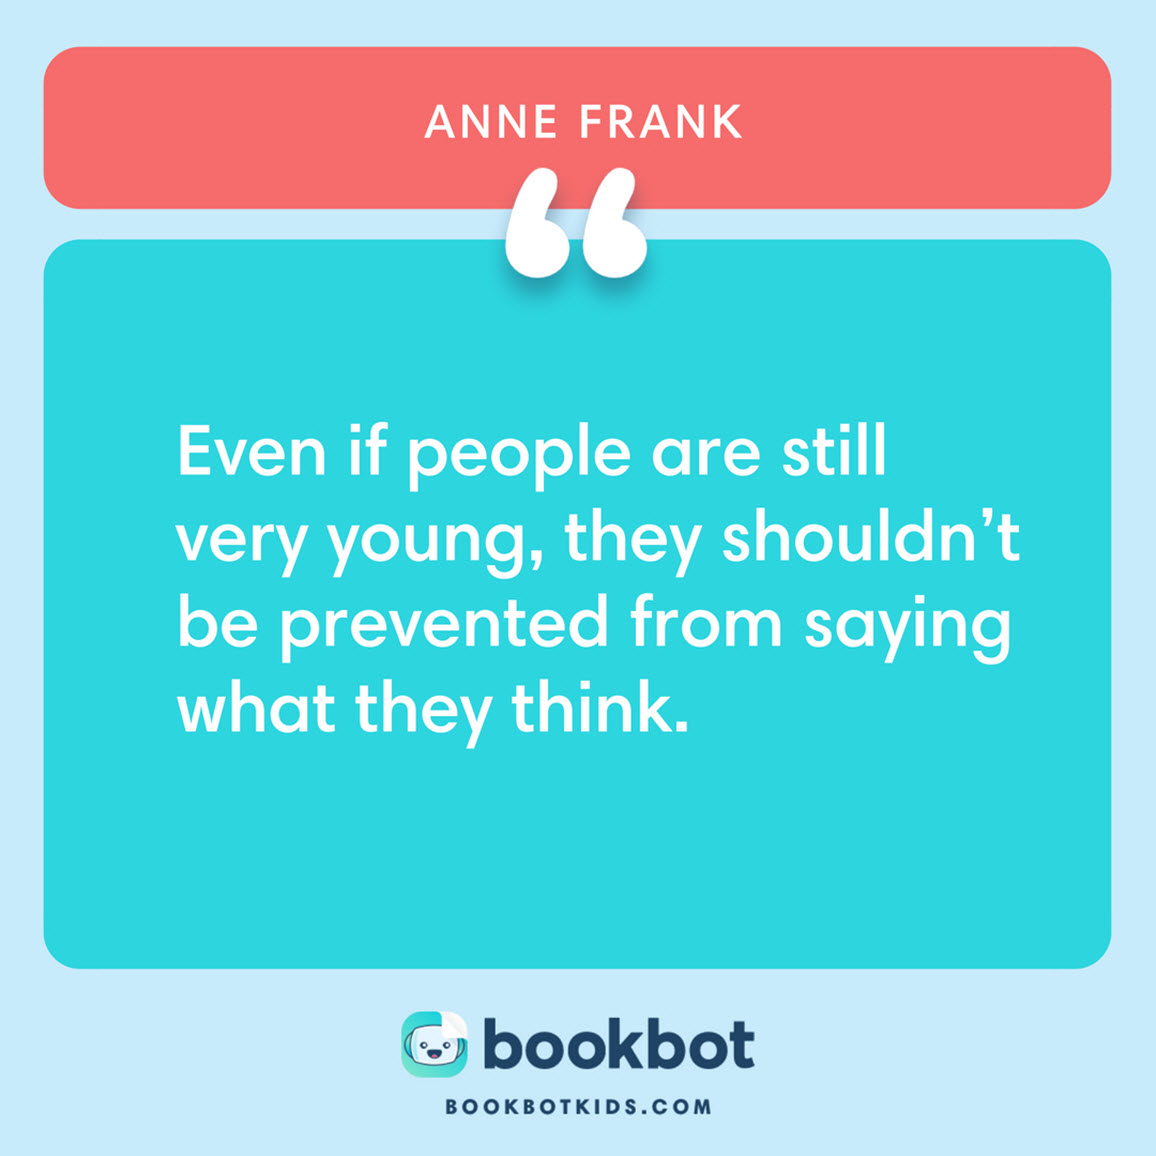 Even if people are still very young, they shouldn't be prevented from saying what they think. – Anne Frank